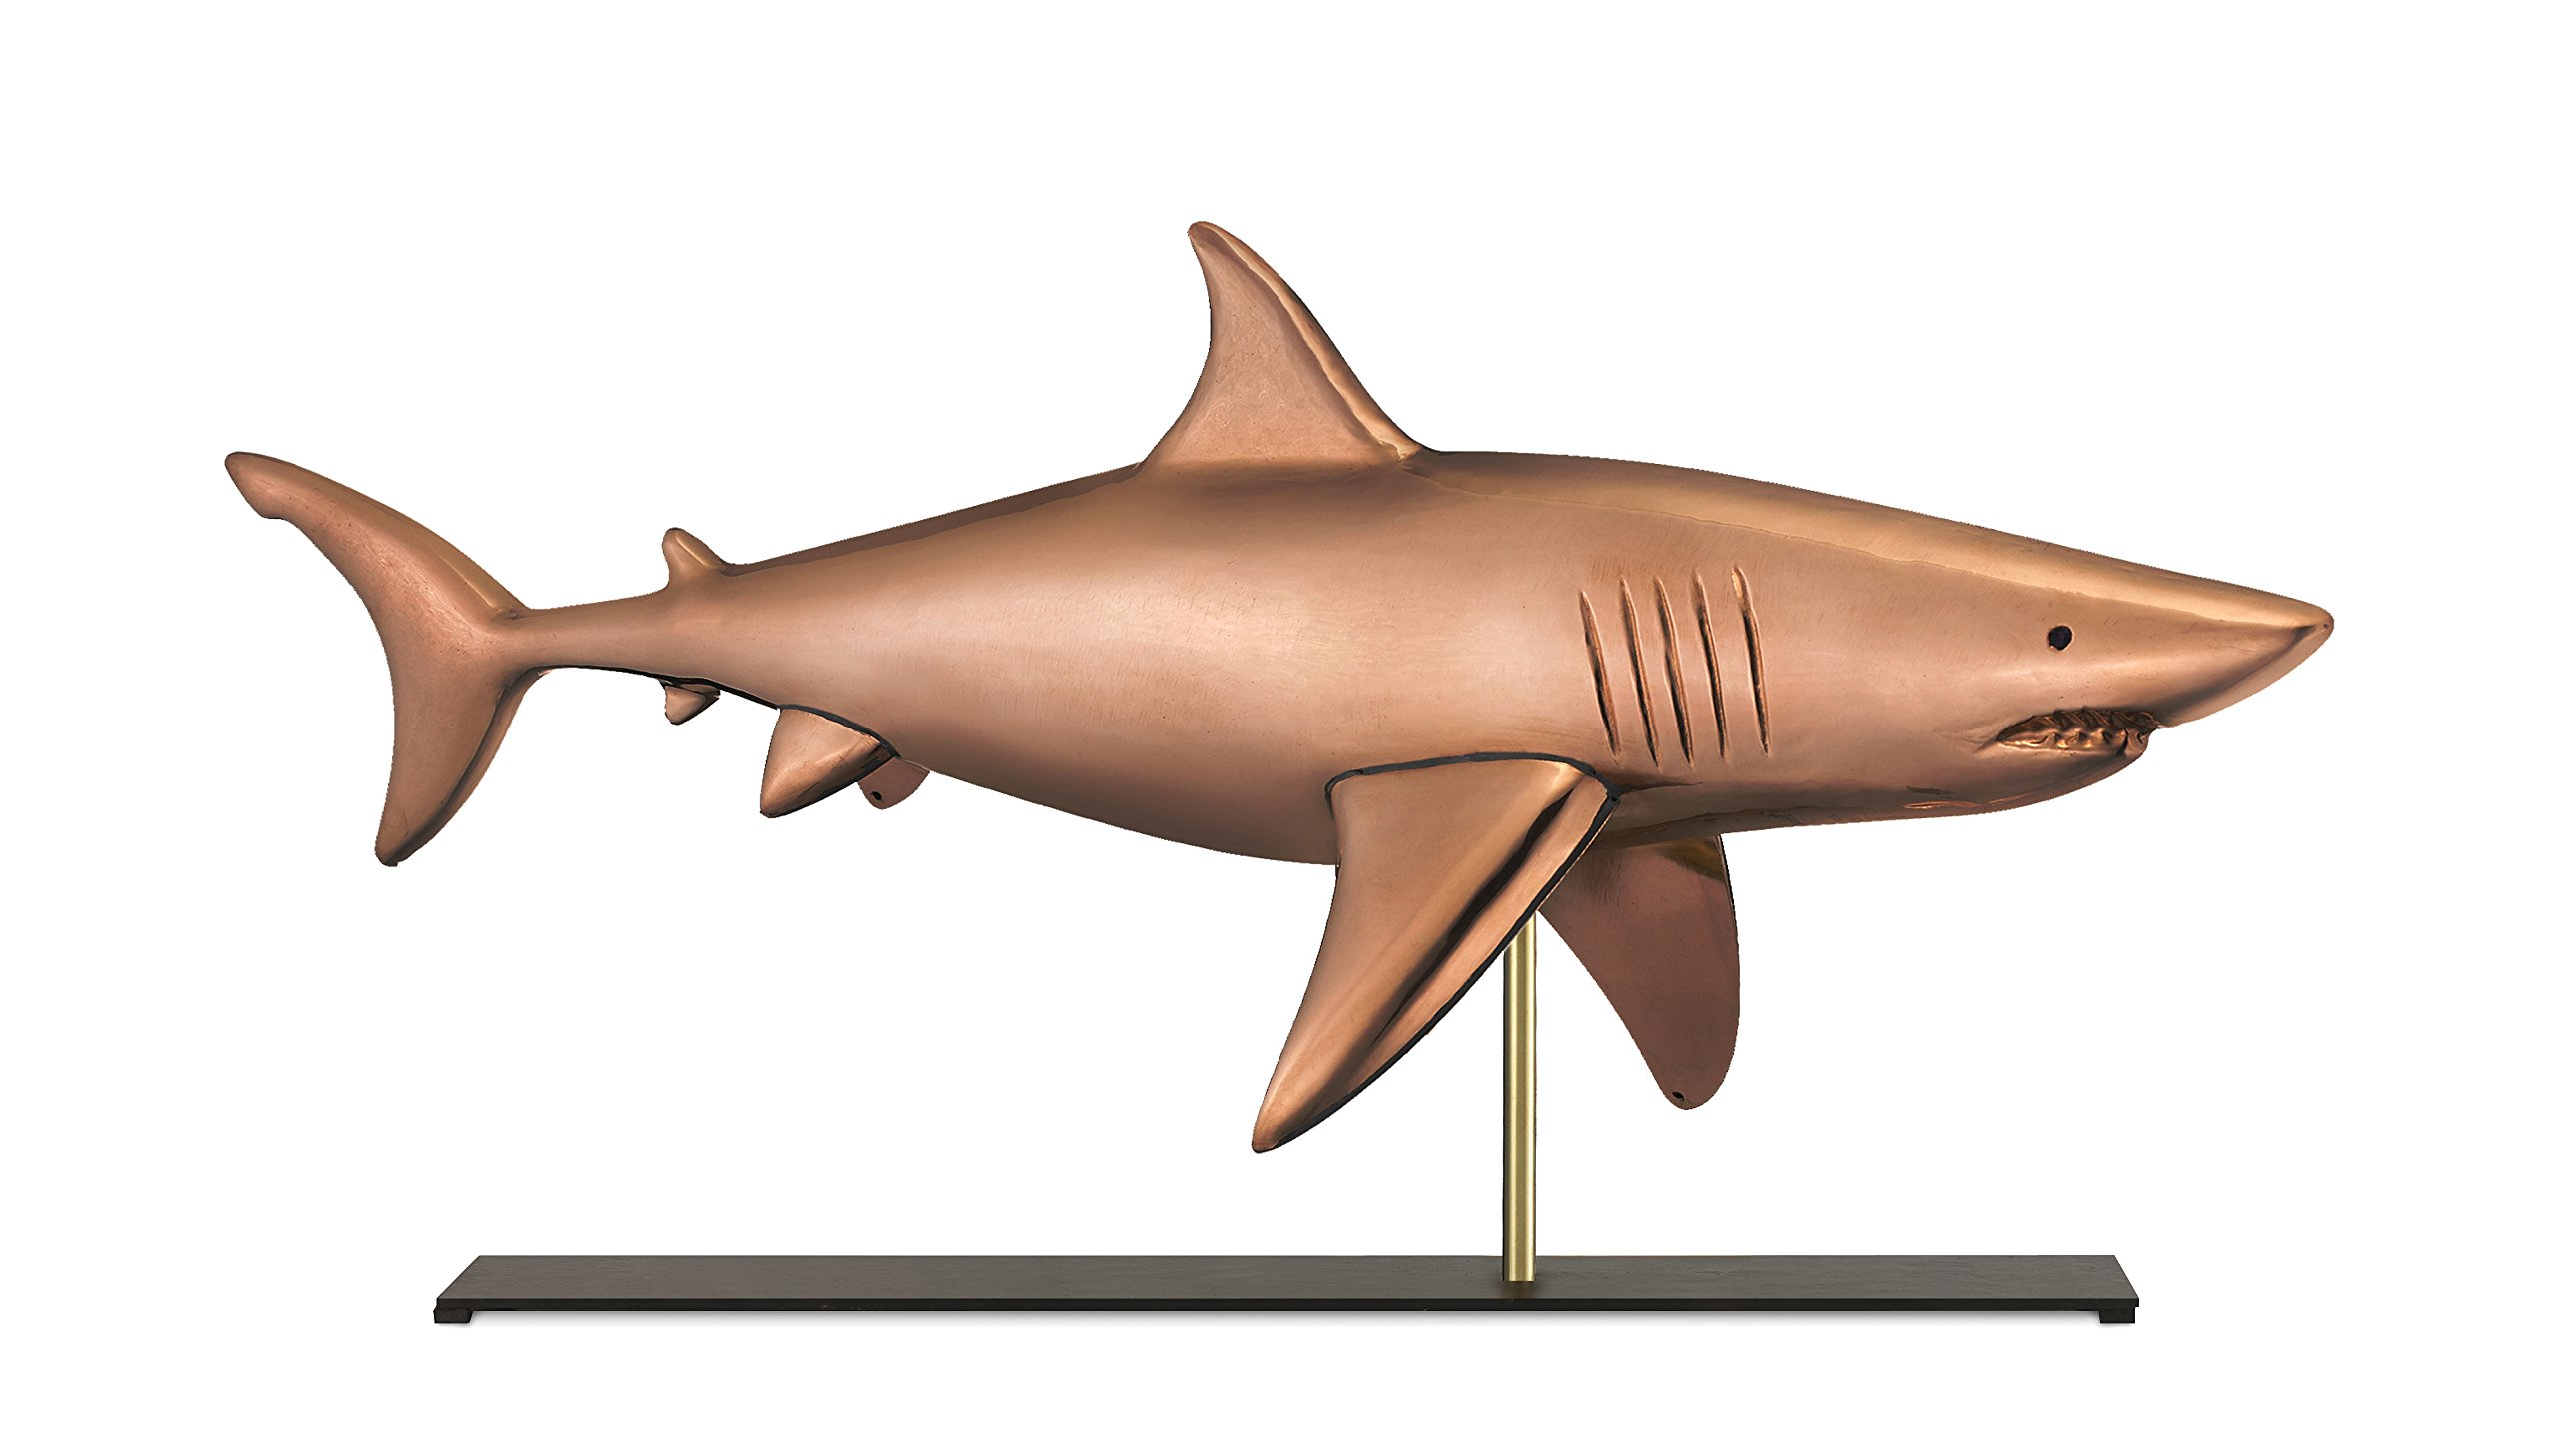 Good Directions Shark Weathervane Sculpture on Mantel / Fireplace Stand, Pure Copper, Nautical Home Décor, Tabletop Accent